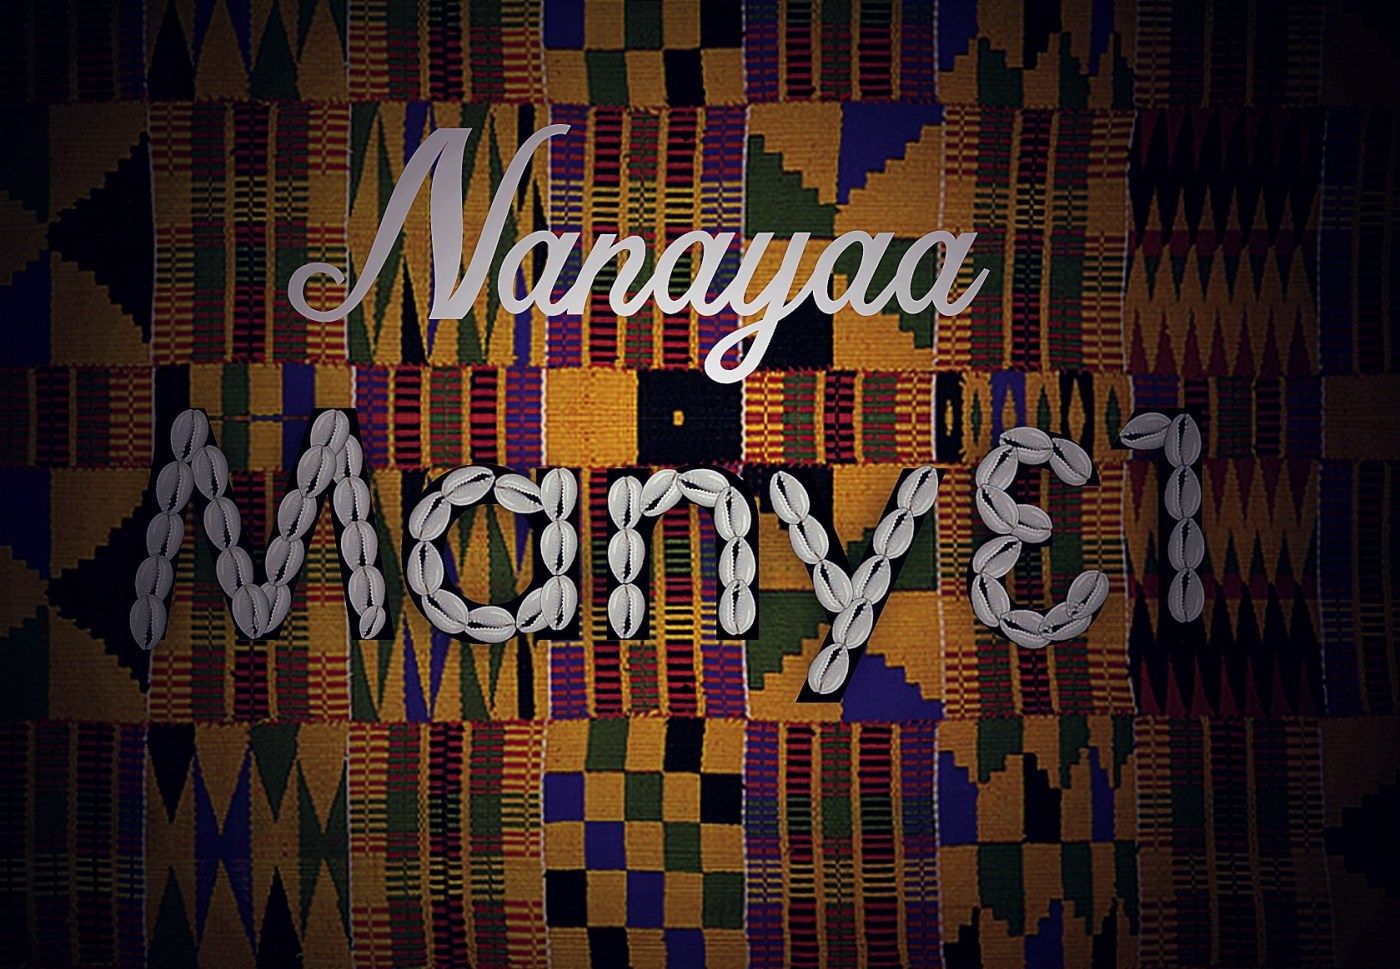 Songstress NanaYaa to release 'Manye 1' album on December 20